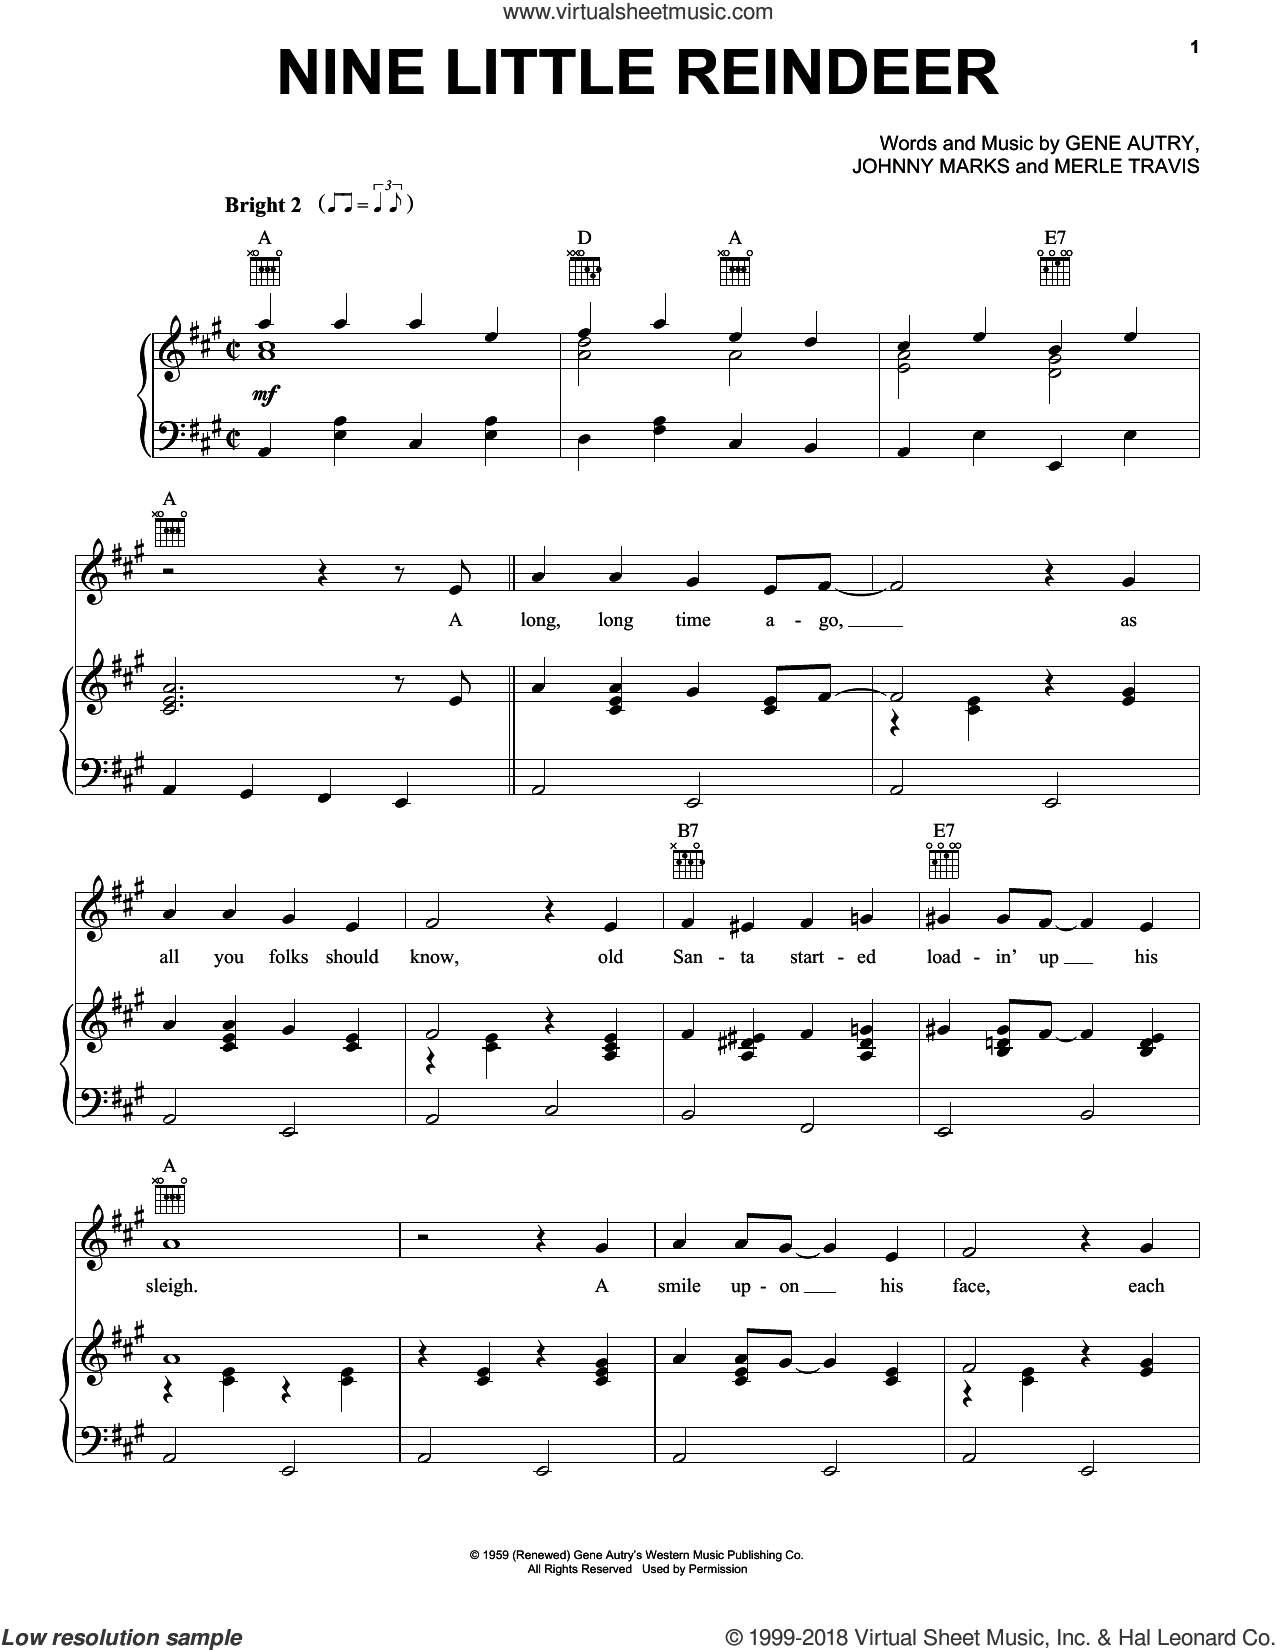 Nine Little Reindeer sheet music for voice, piano or guitar by Gene Autry, Johnny Marks and Merle Travis, intermediate skill level